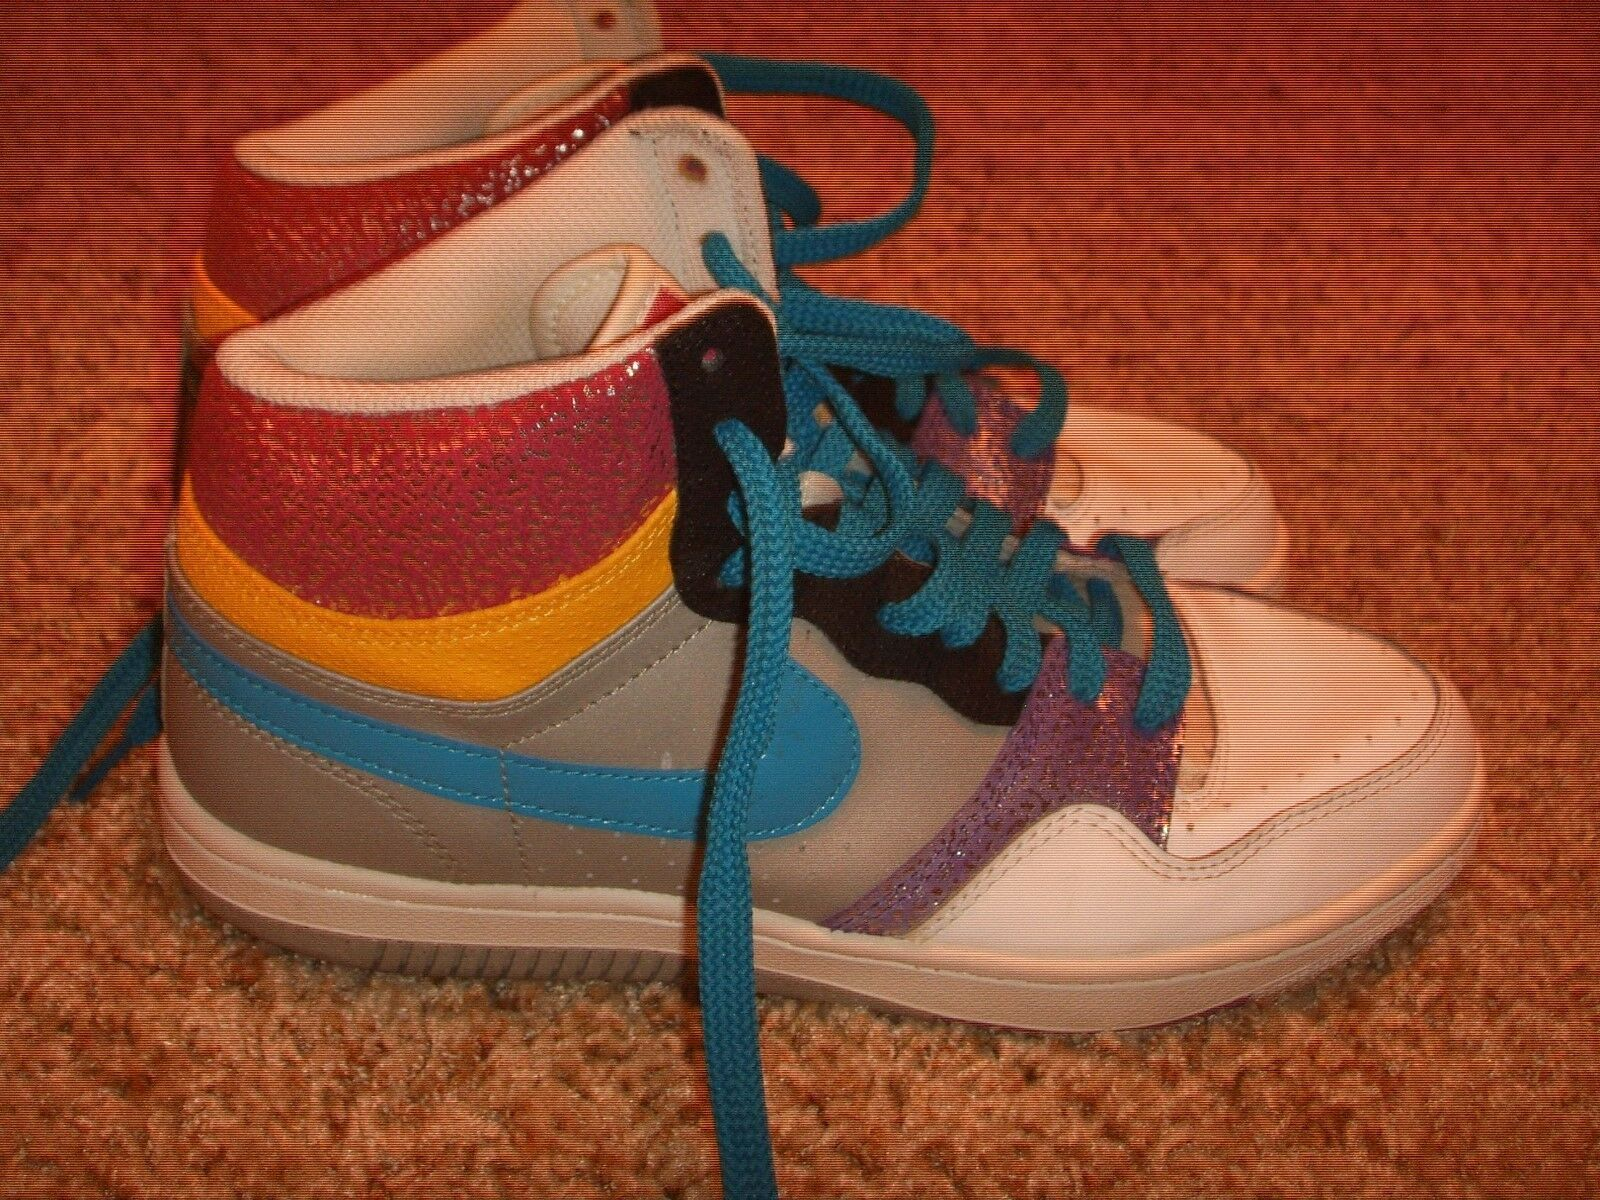 Nike Court Force High 316117-041 Gray/Blue/Pink/Purple Womens Comfortable Wild casual shoes